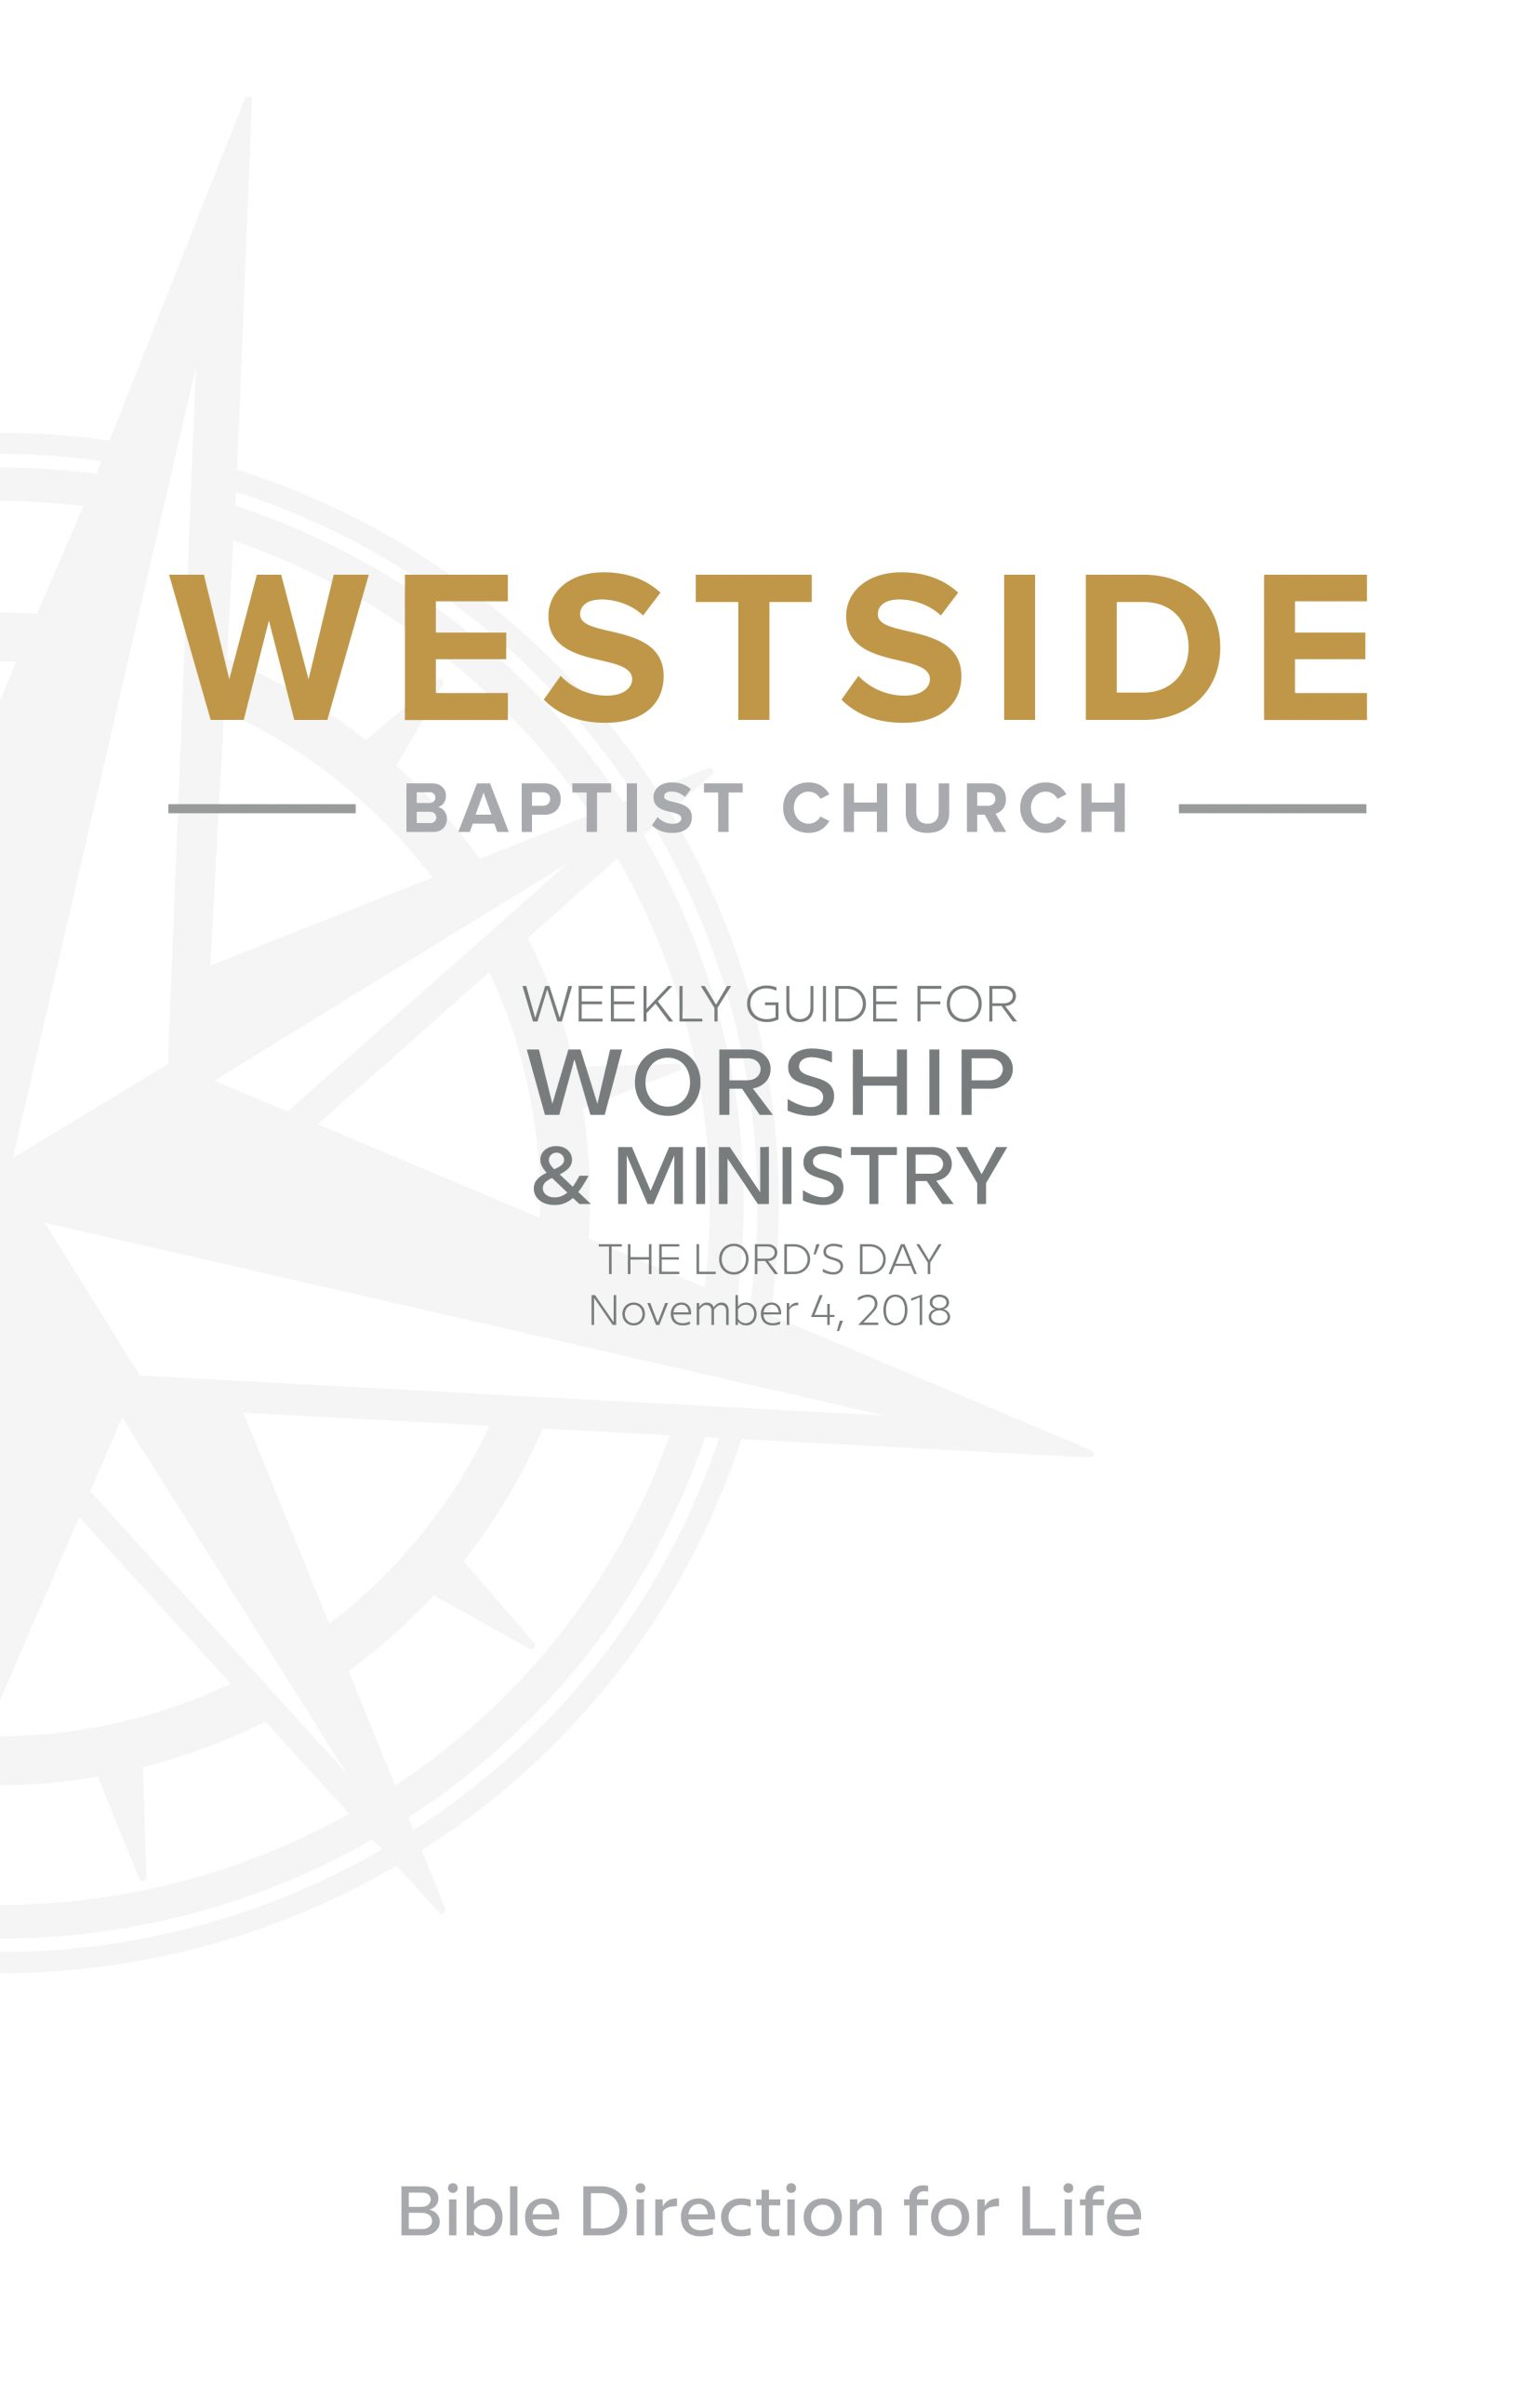 Weekly Guide for Worship and Ministry—November 4